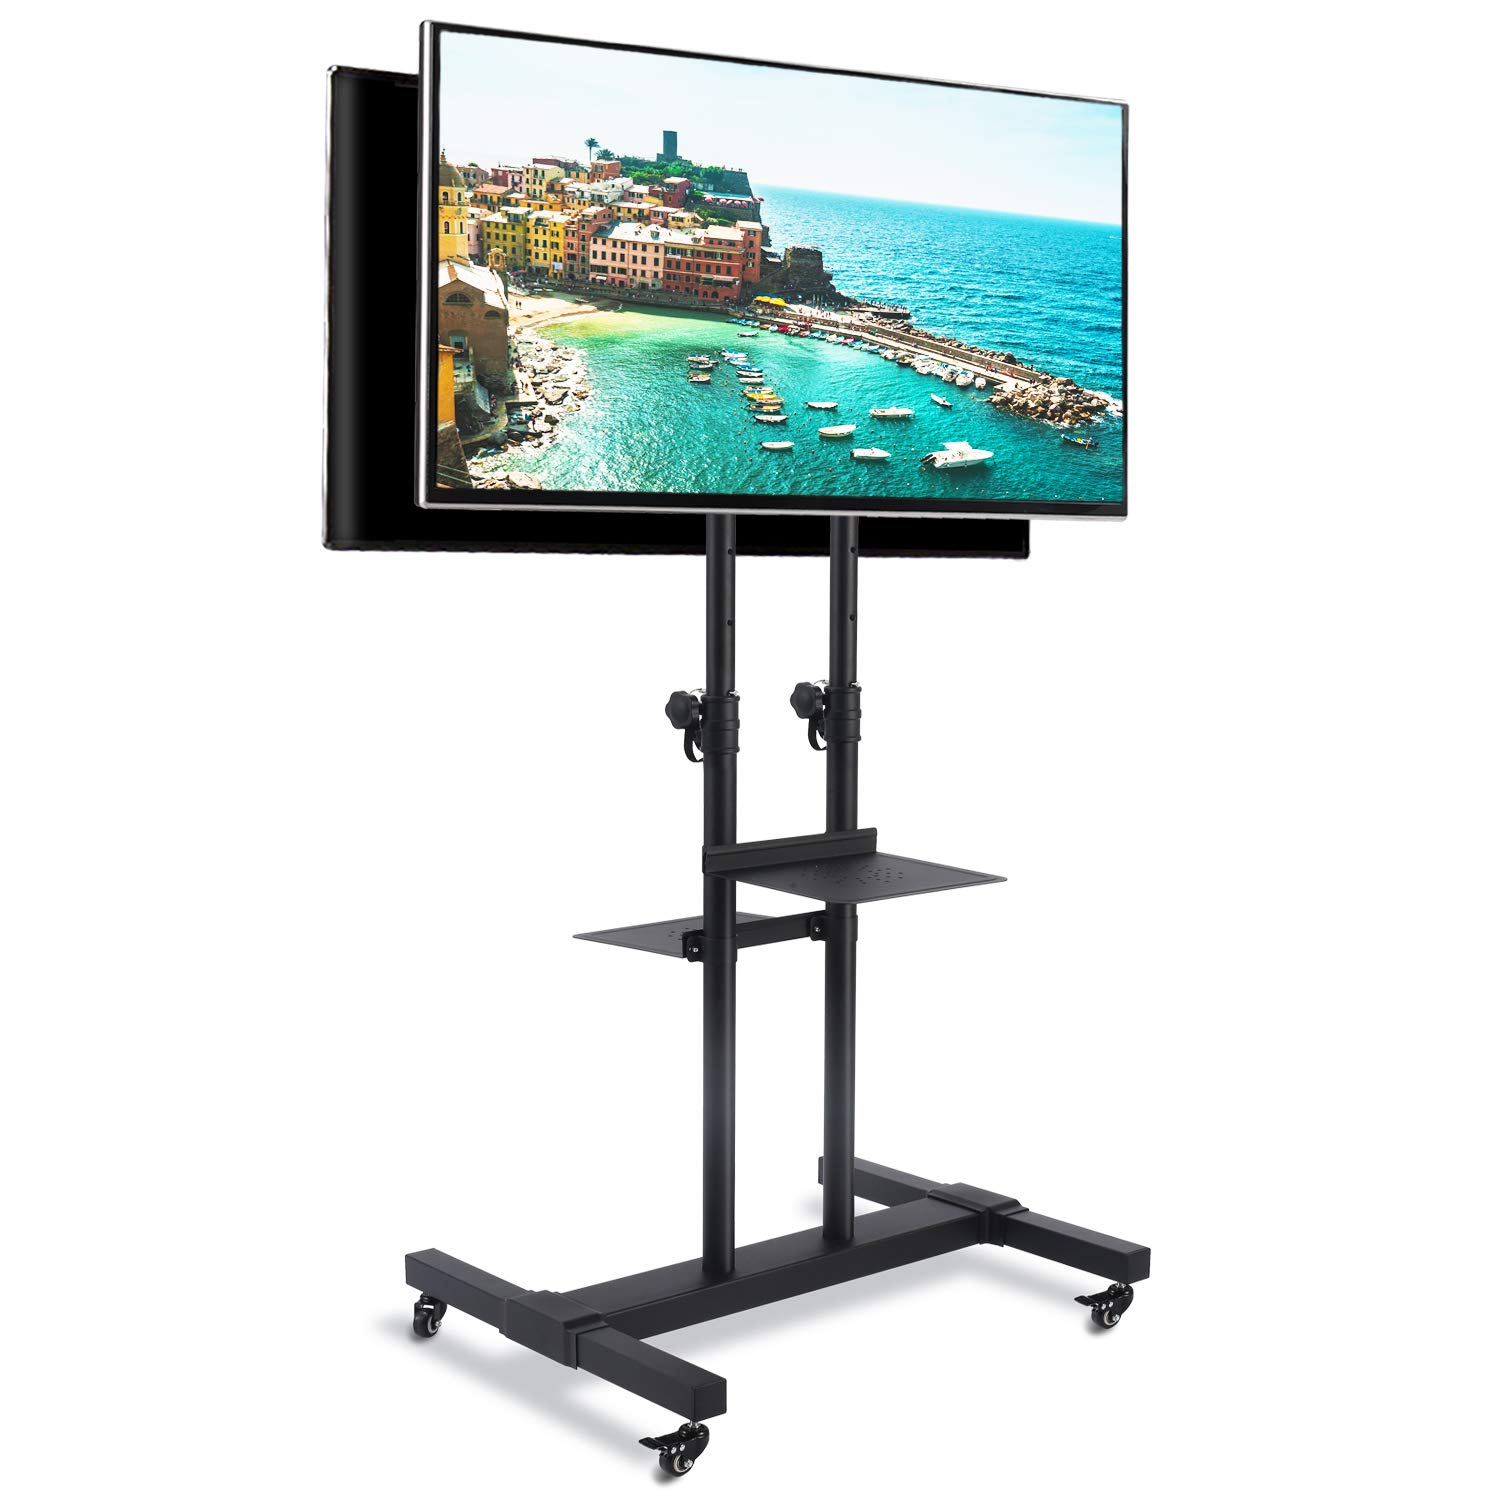 Rfiver Universal Mobile TV Stand Rolling TV Cart with Dual Shelf Tilt Mount and Wheels Heavy Duty Base for 37 40 42 45 47 50 55 60 65 70 75 80 inch LCD LED OLED Plasma Flat Panel or Curved Screen TVs by Rfiver